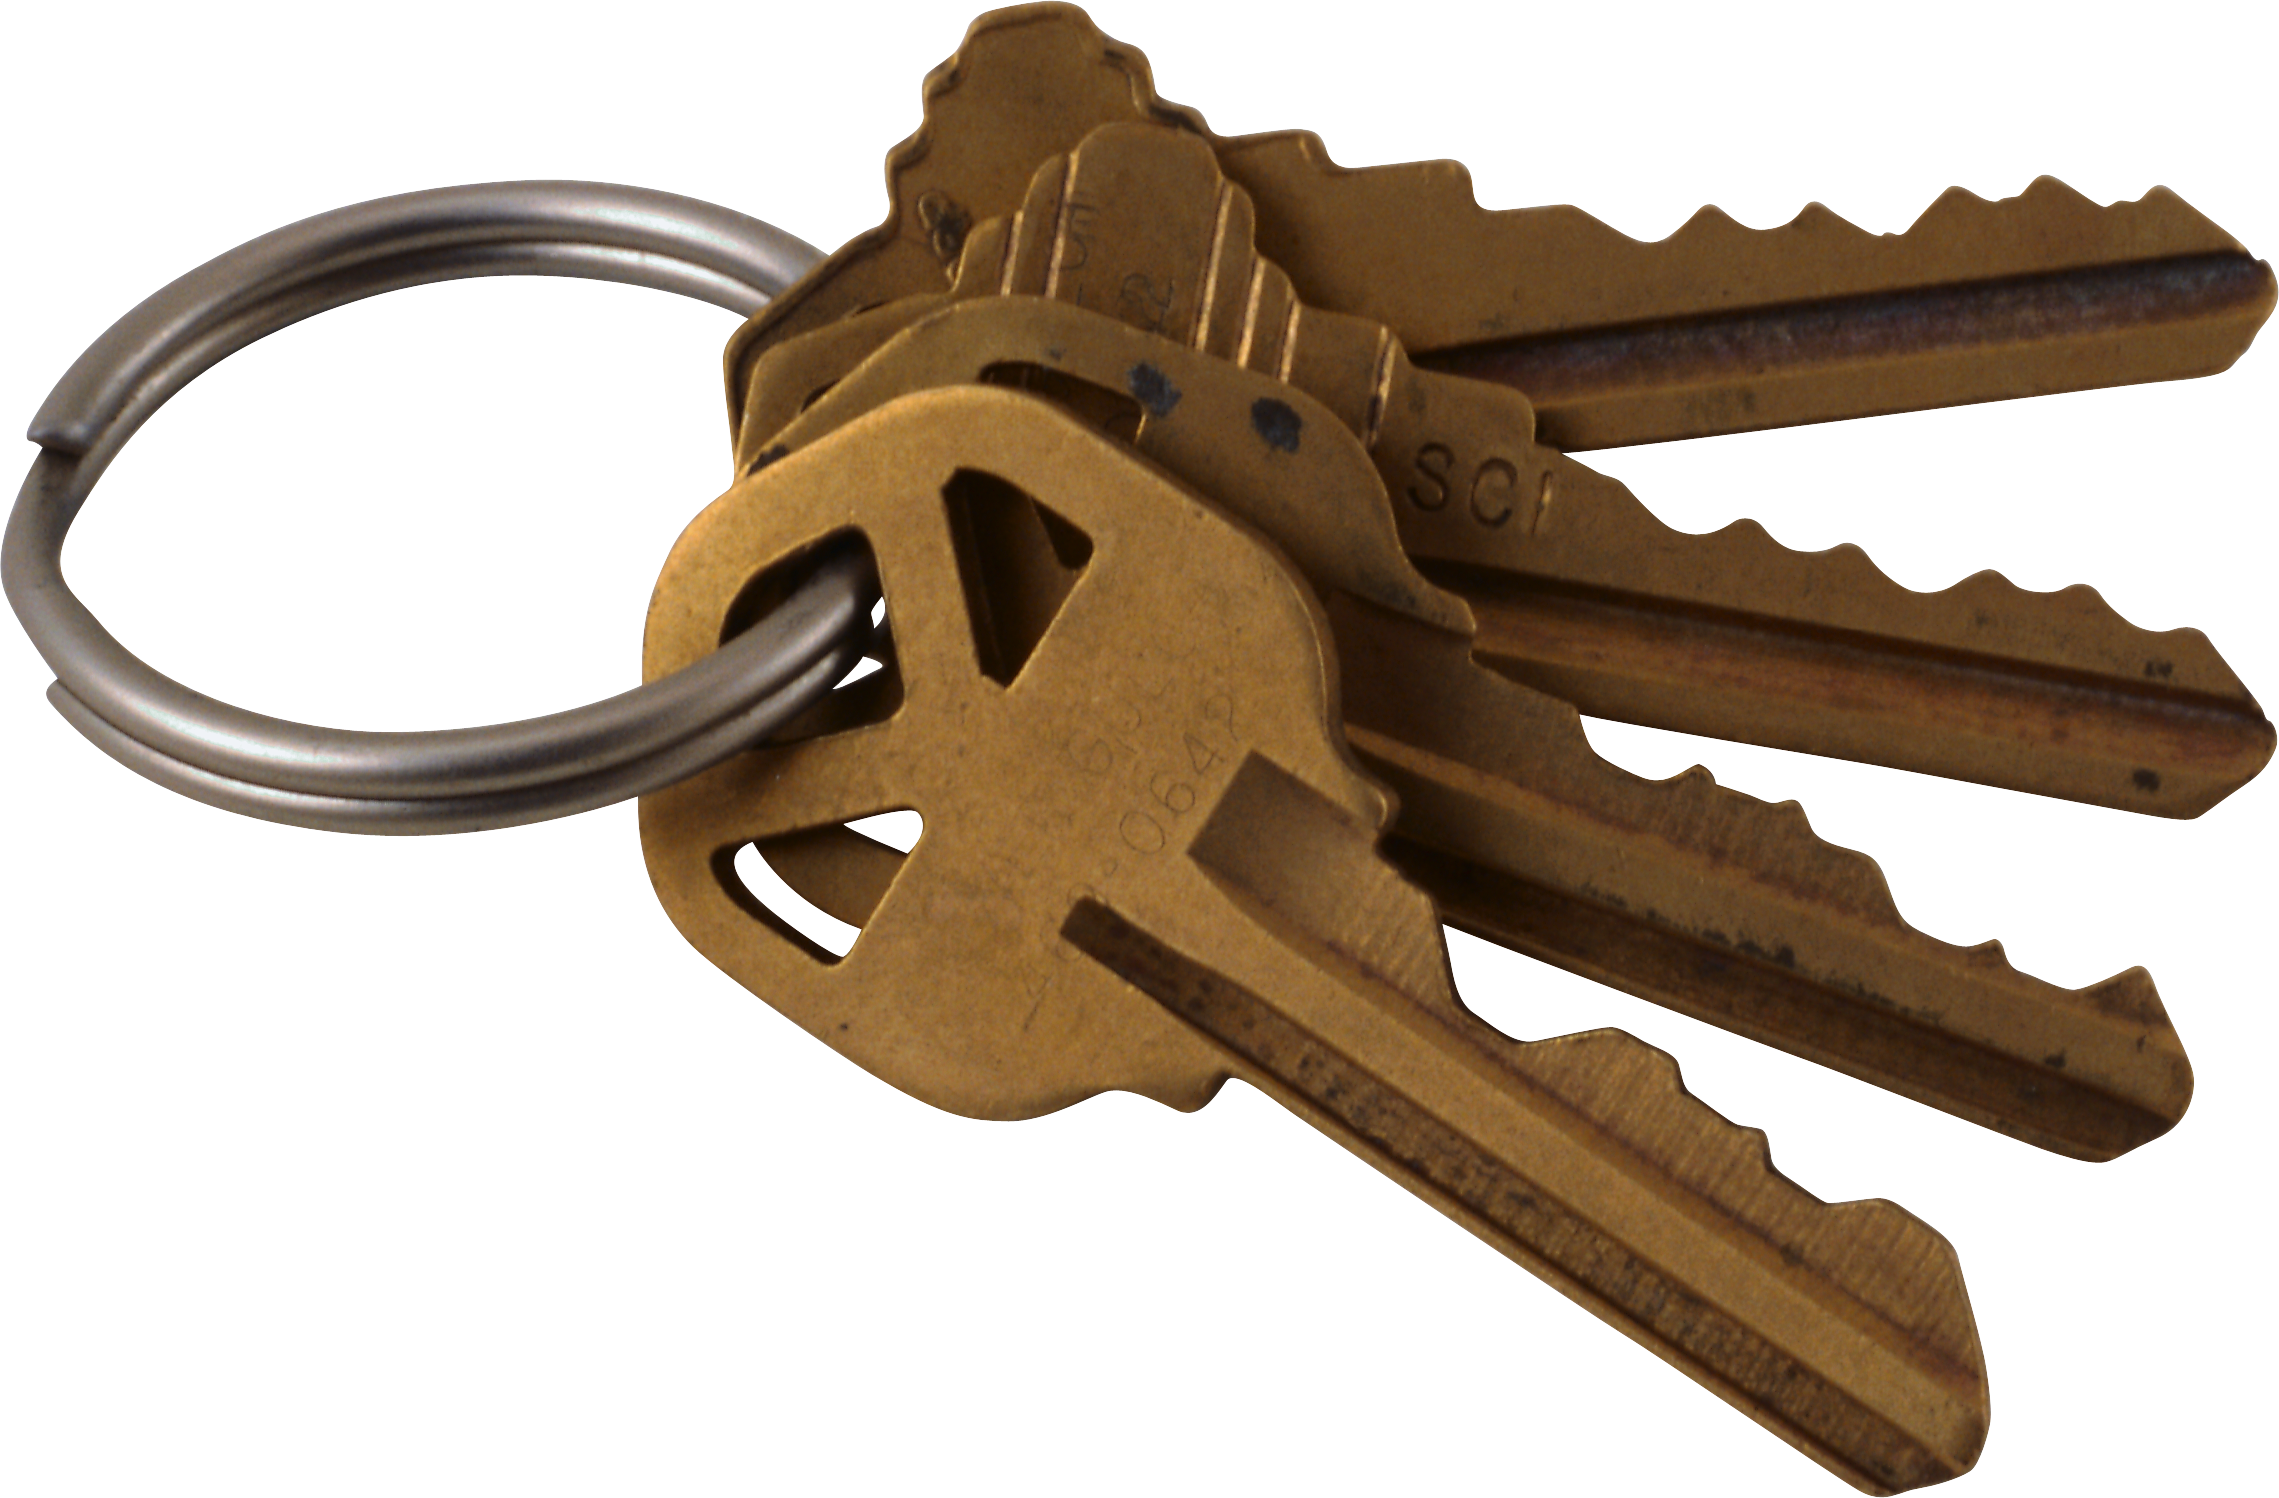 Key PNG images, free pictures with transparency background